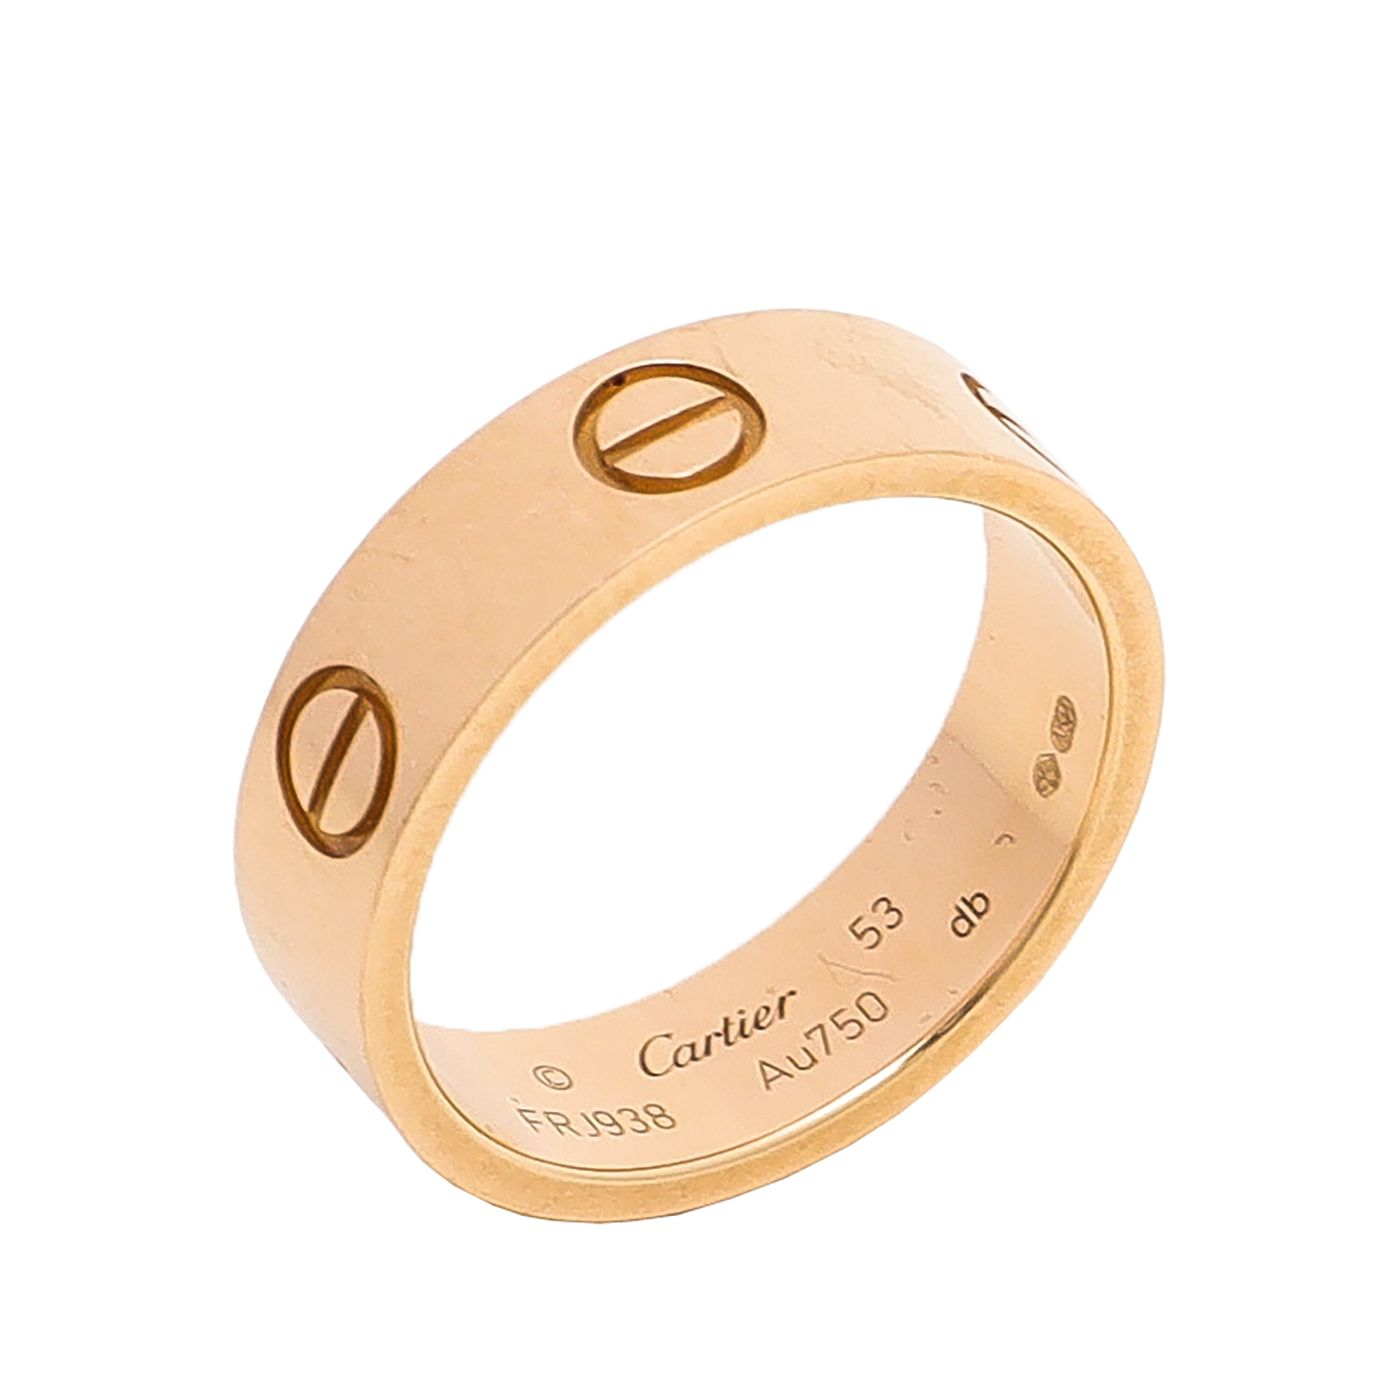 Cartier 18K Yellow Gold Love Ring 53